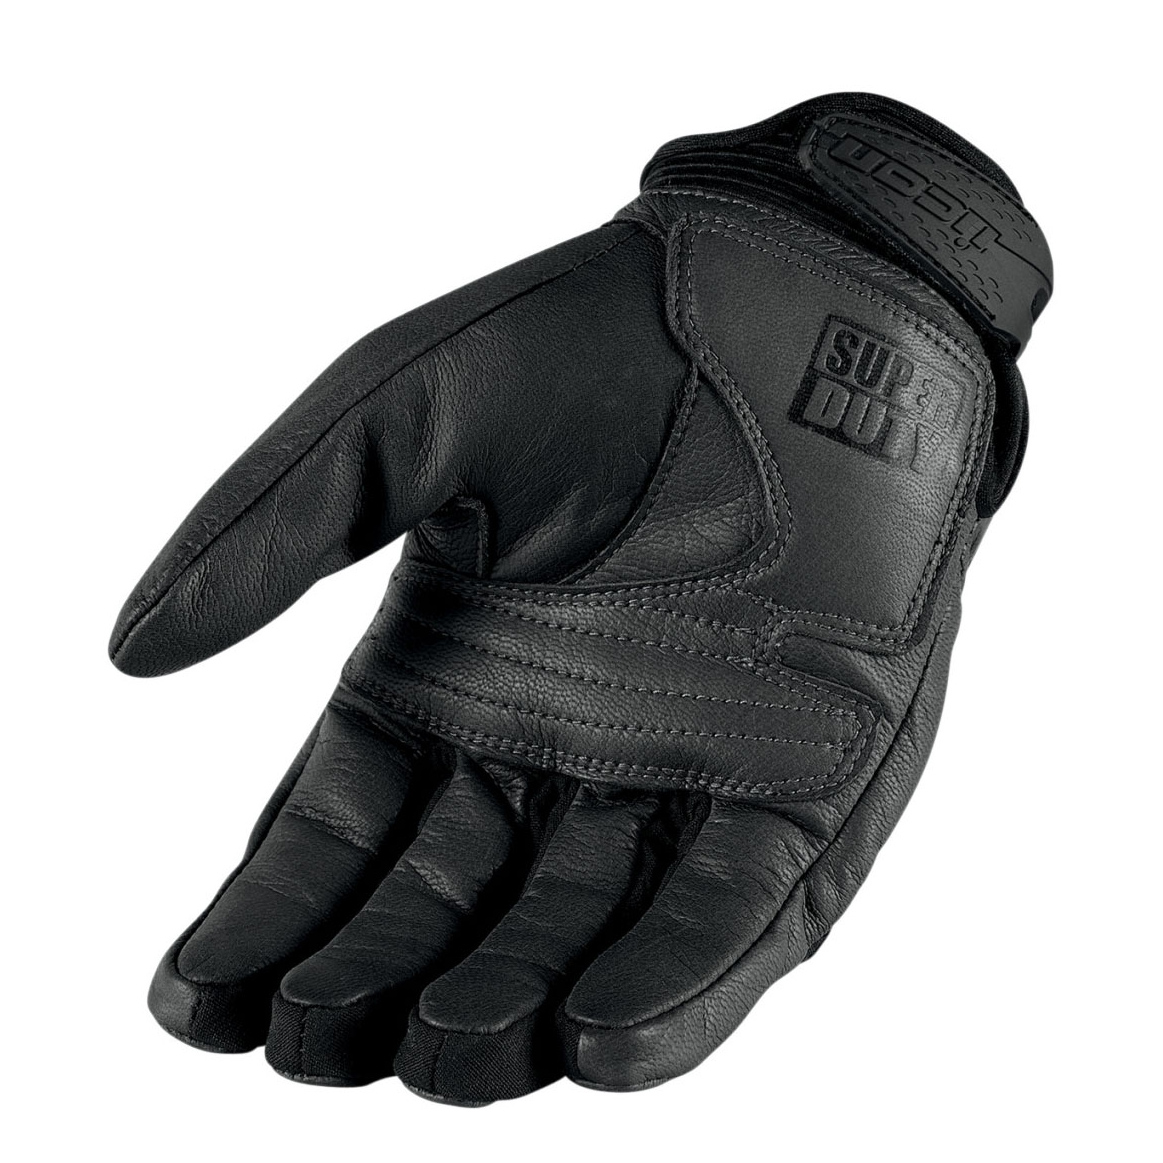 NEW Icon Mens Super Duty 2 Leather Armored Motorcycle Gloves BLACK  All Sizes